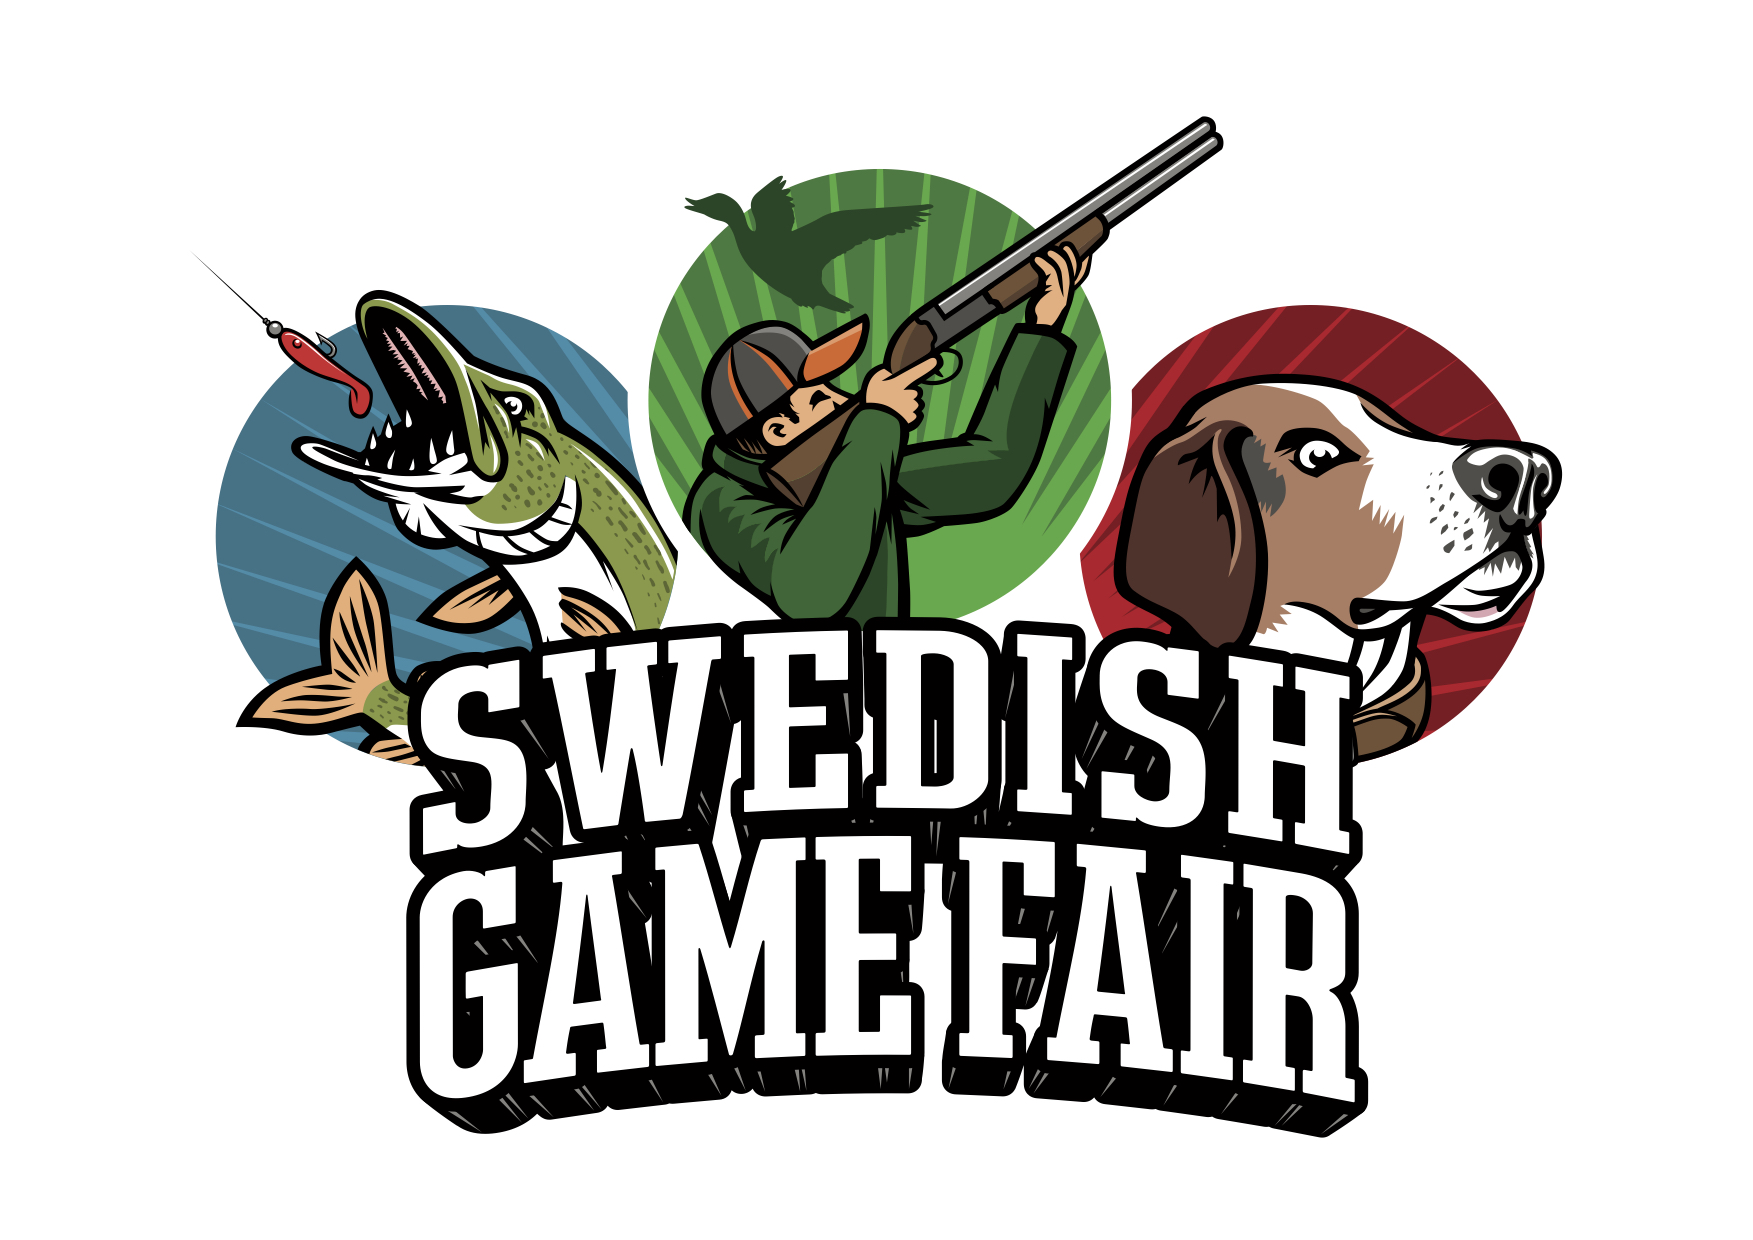 Swedish Game Fair Logo CMYK.jpg